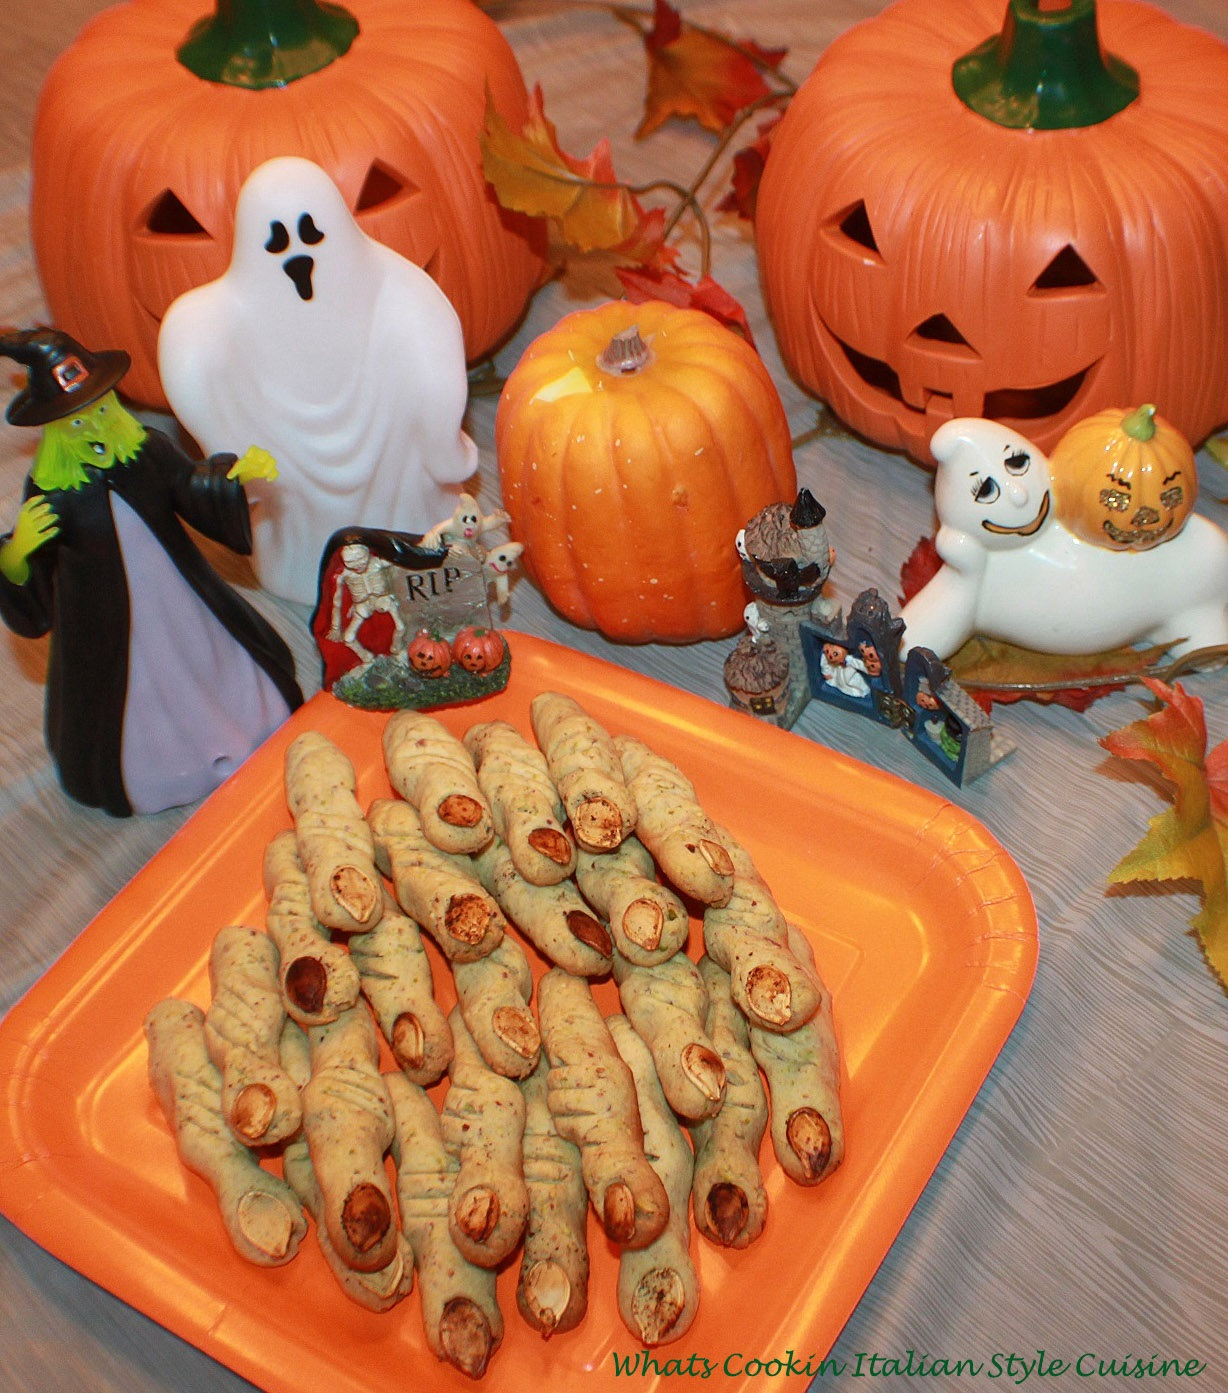 Halloween Pistachio Witches Finger Cookies scary crooked pistachio cookies buttery pistachio green tasty cookies for a ghoulish Halloween trick or treat